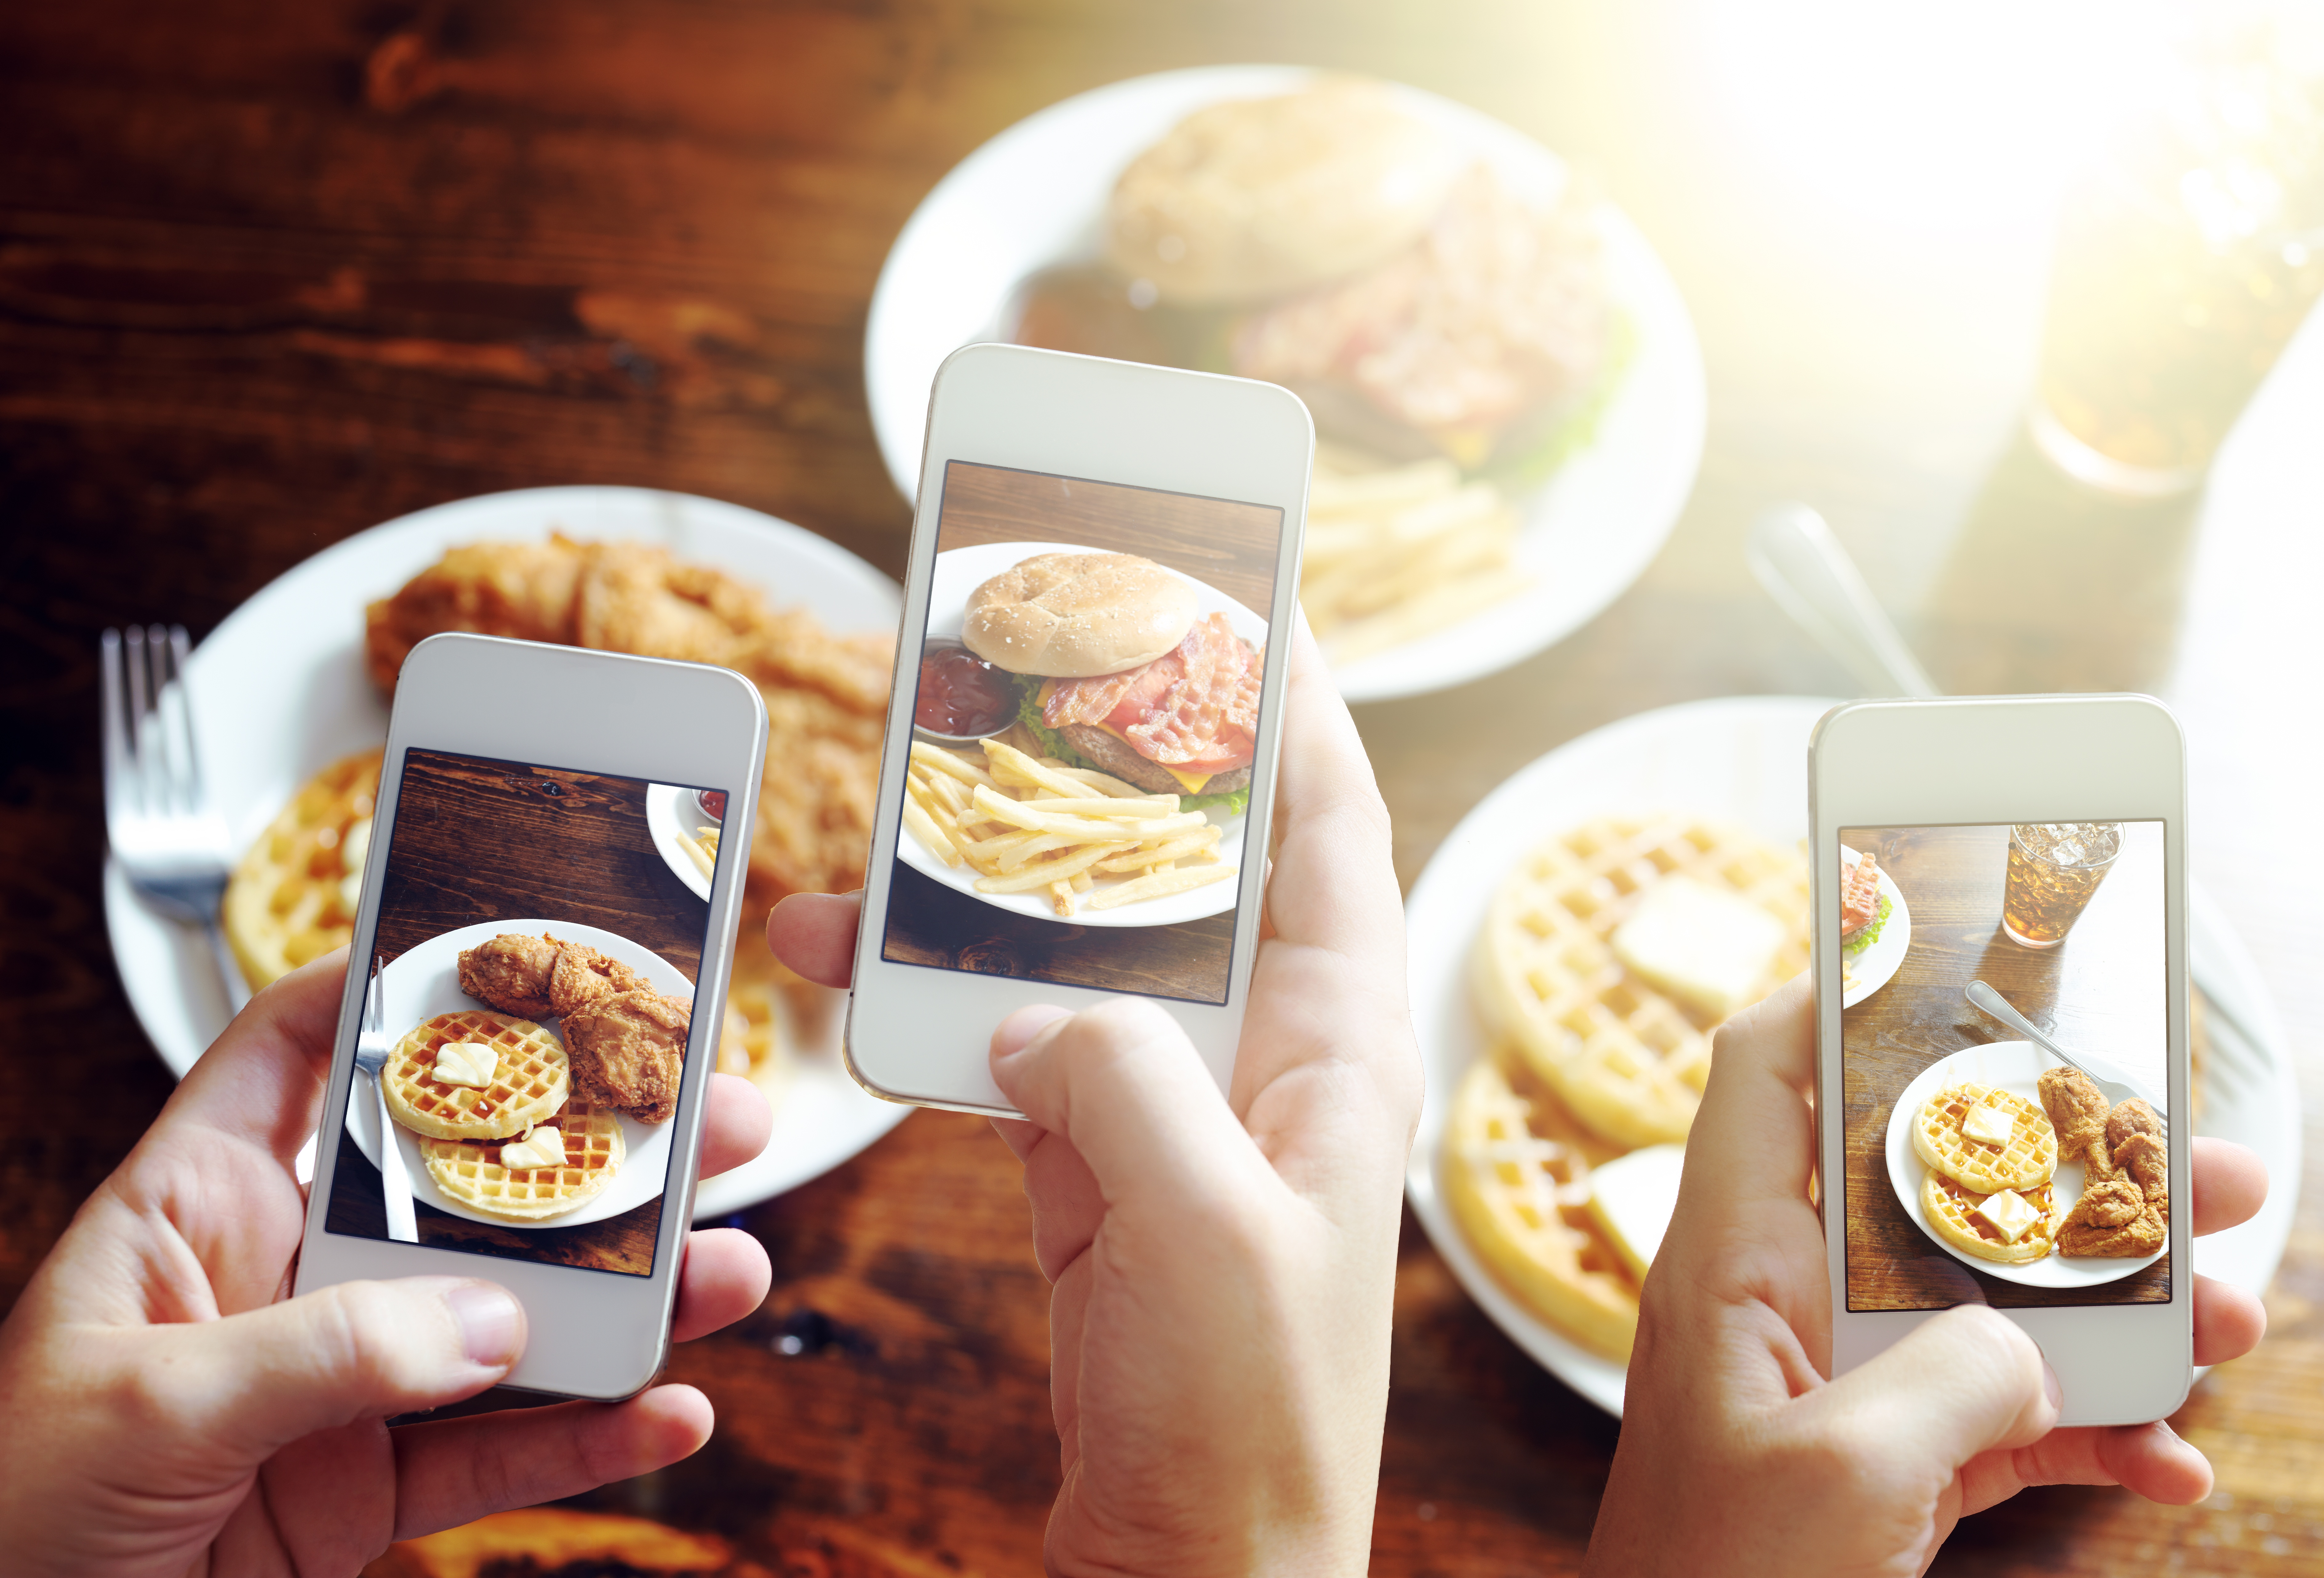 friends-taking-photos-of-food-with-smart-phones-508631655_7555x5130